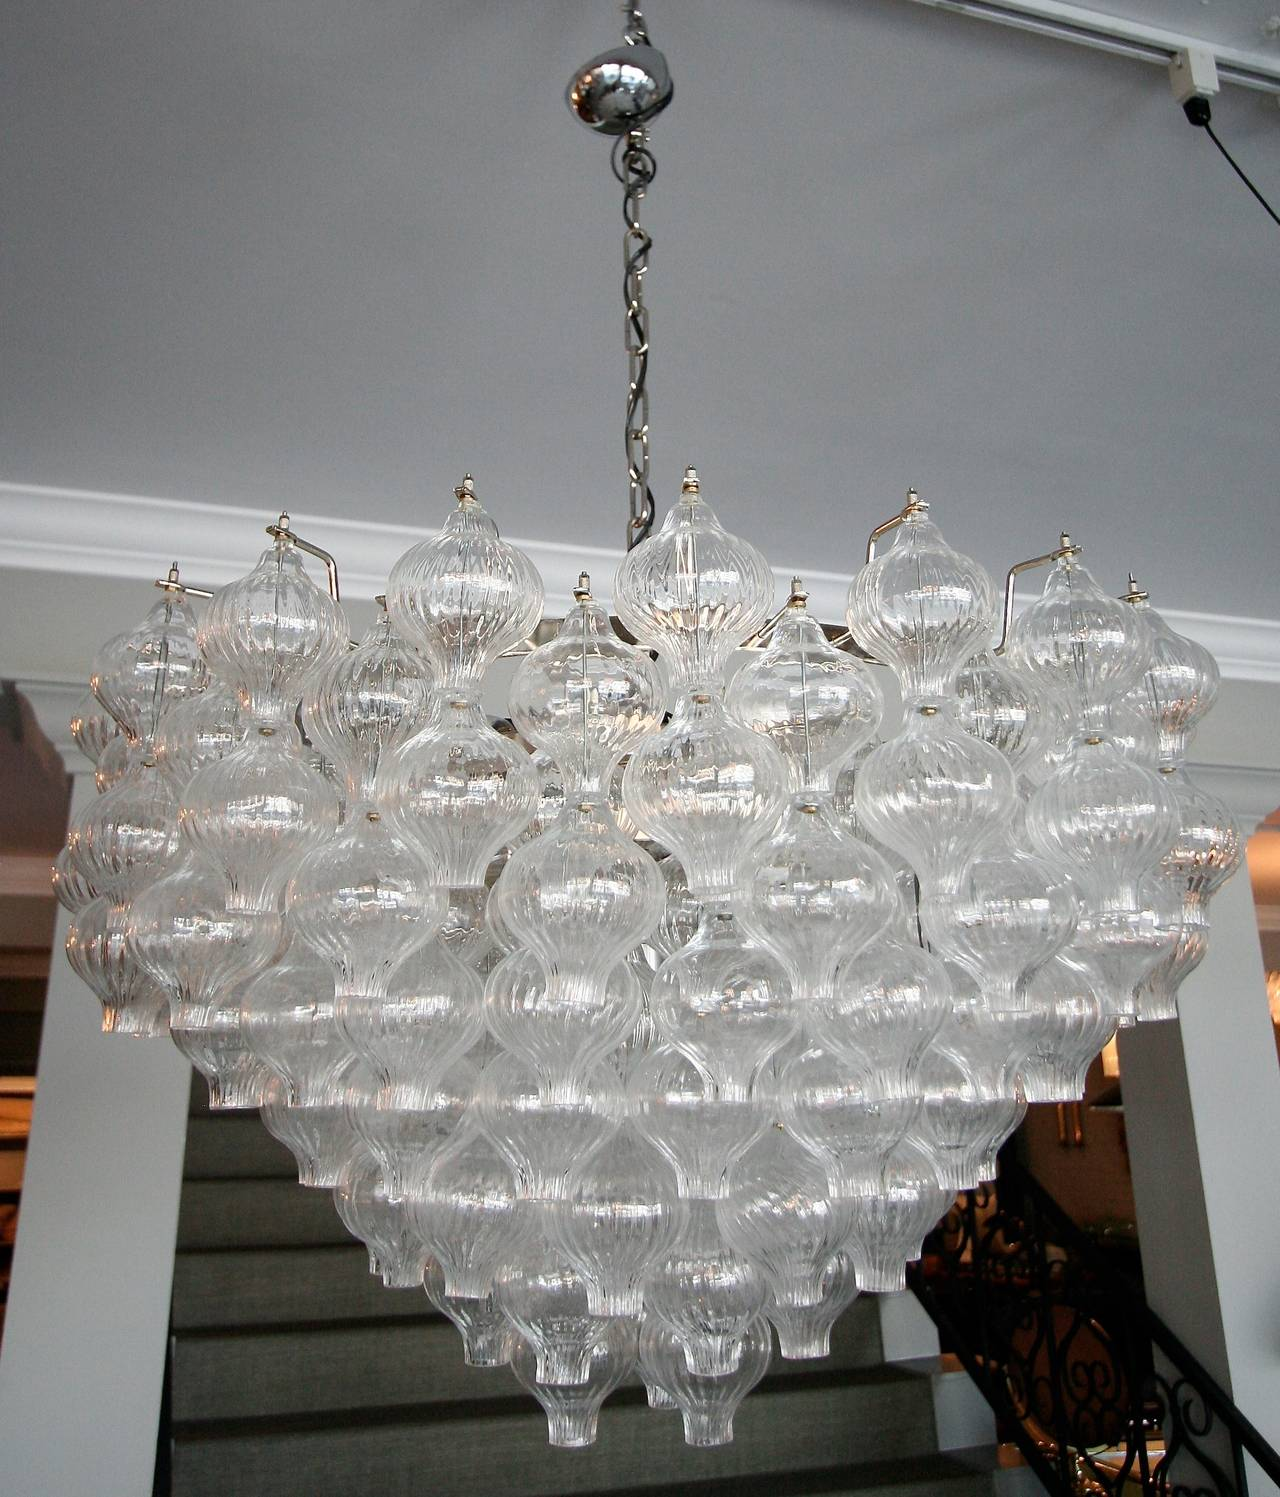 Murano glass chandelier with 95 double glass tulip shaped balls to make hourglass shapes.